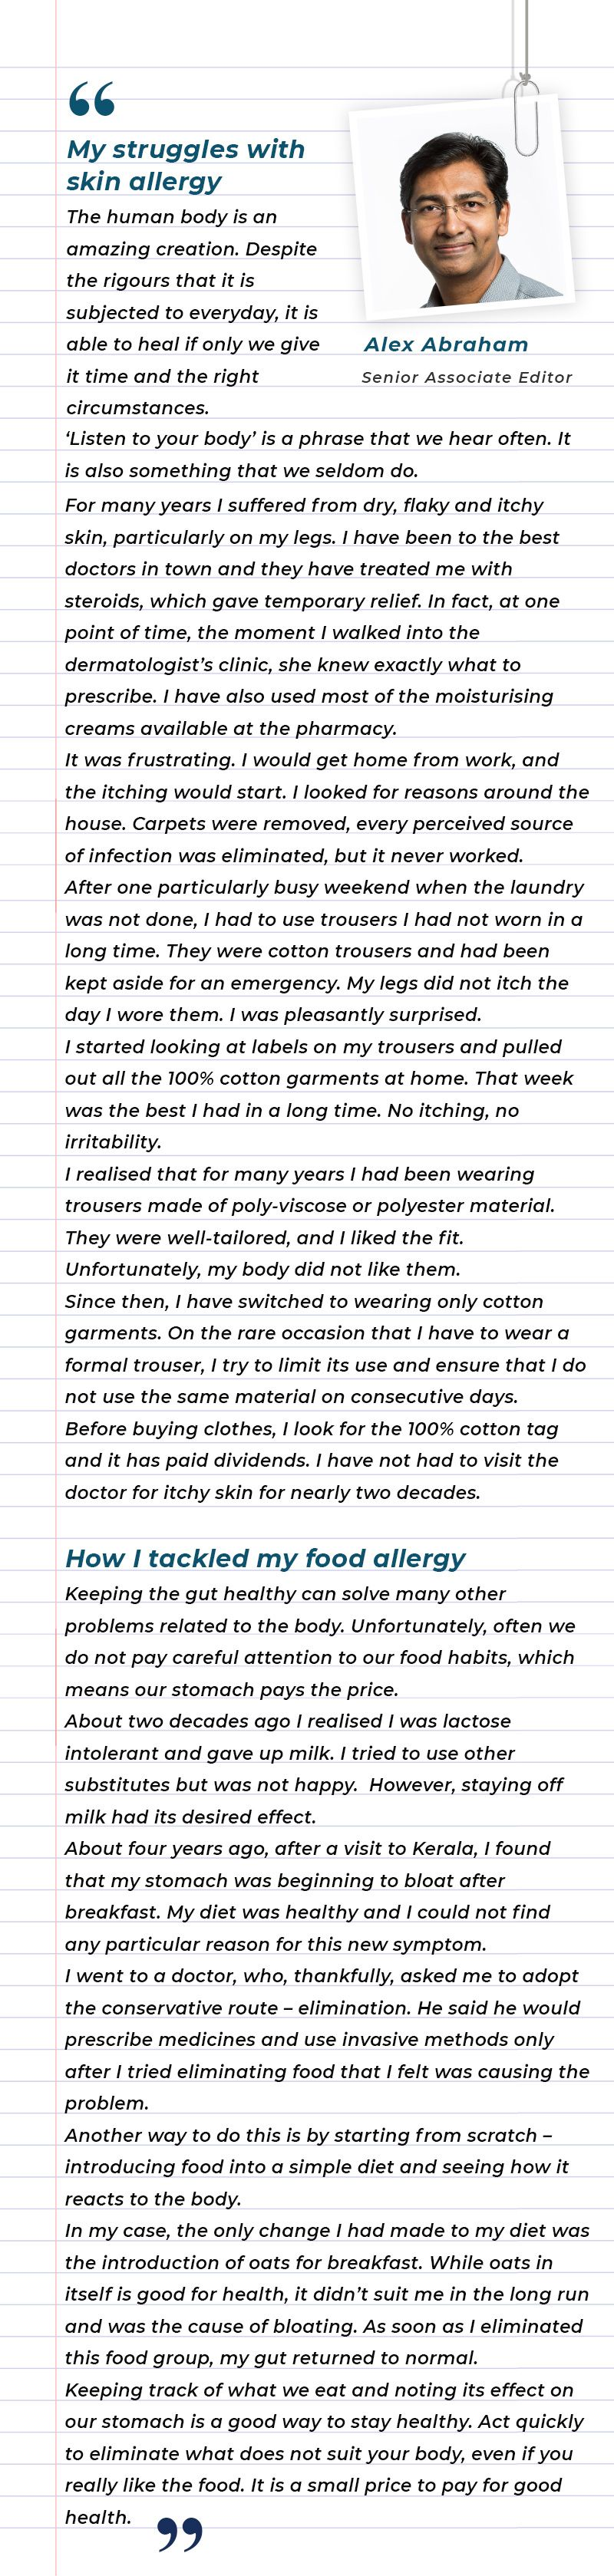 My struggles with skin and food allergies